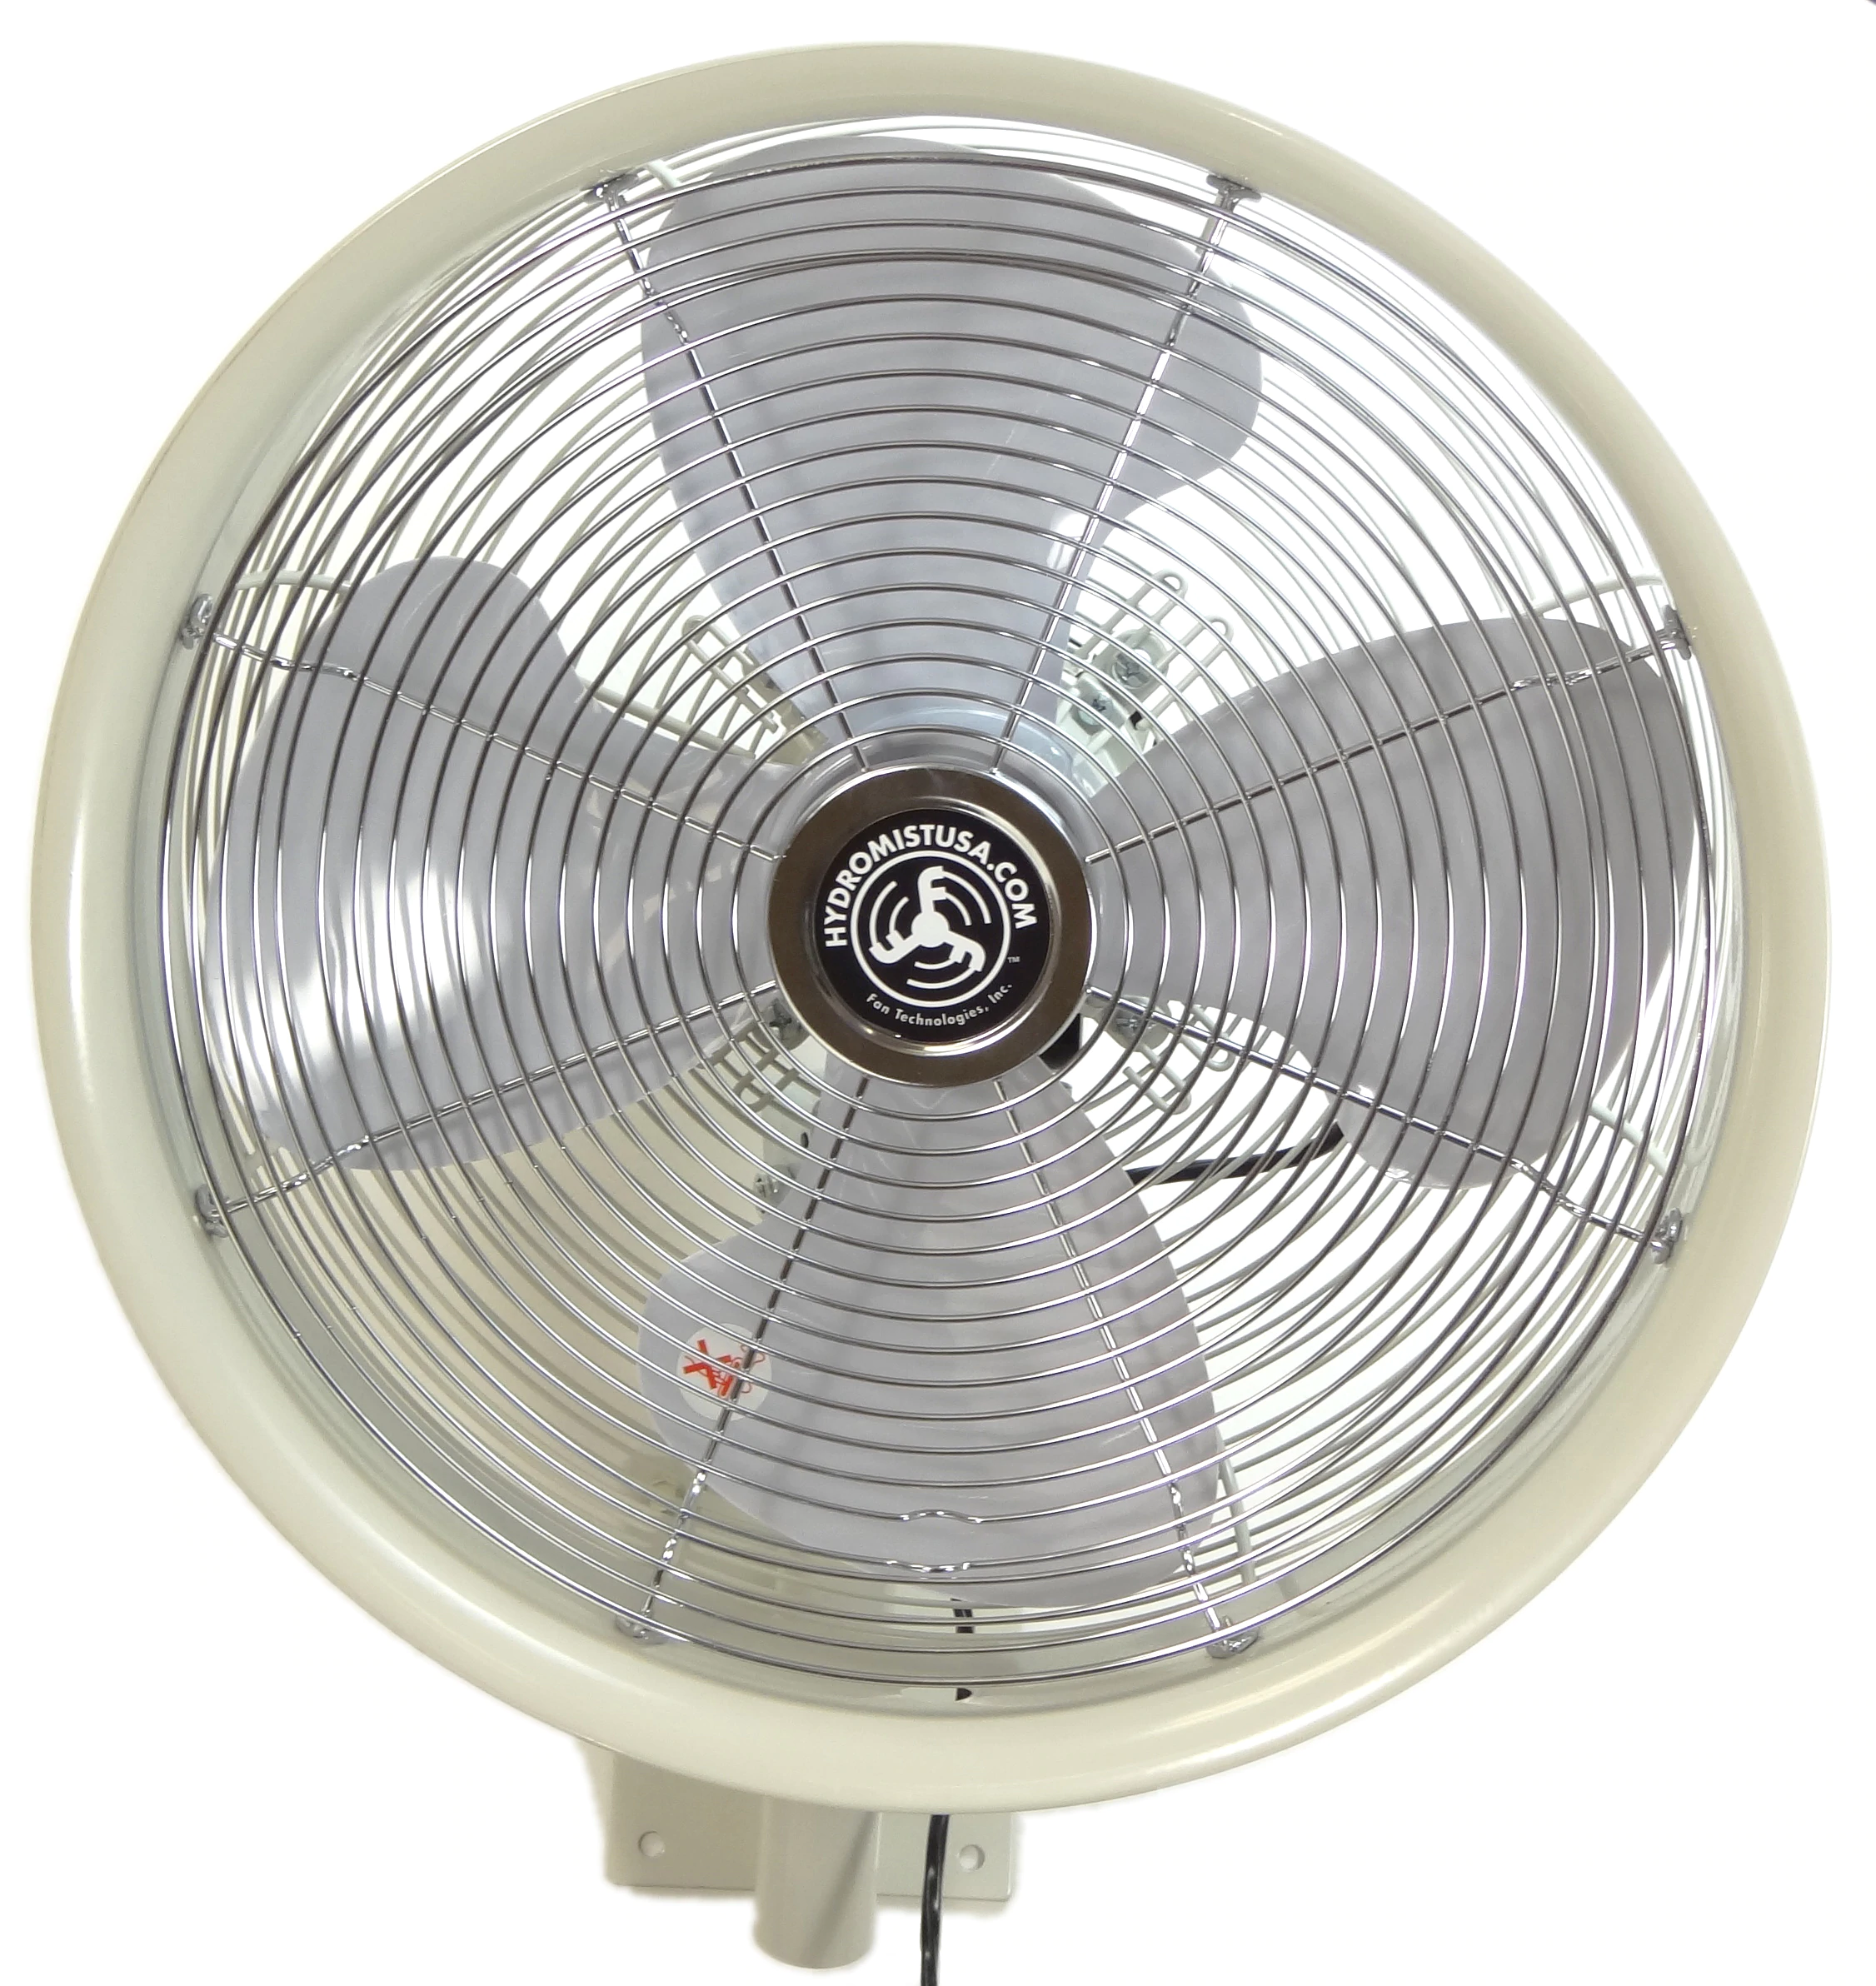 Outdoor 18 Inch Shrouded Oscillating Fan white